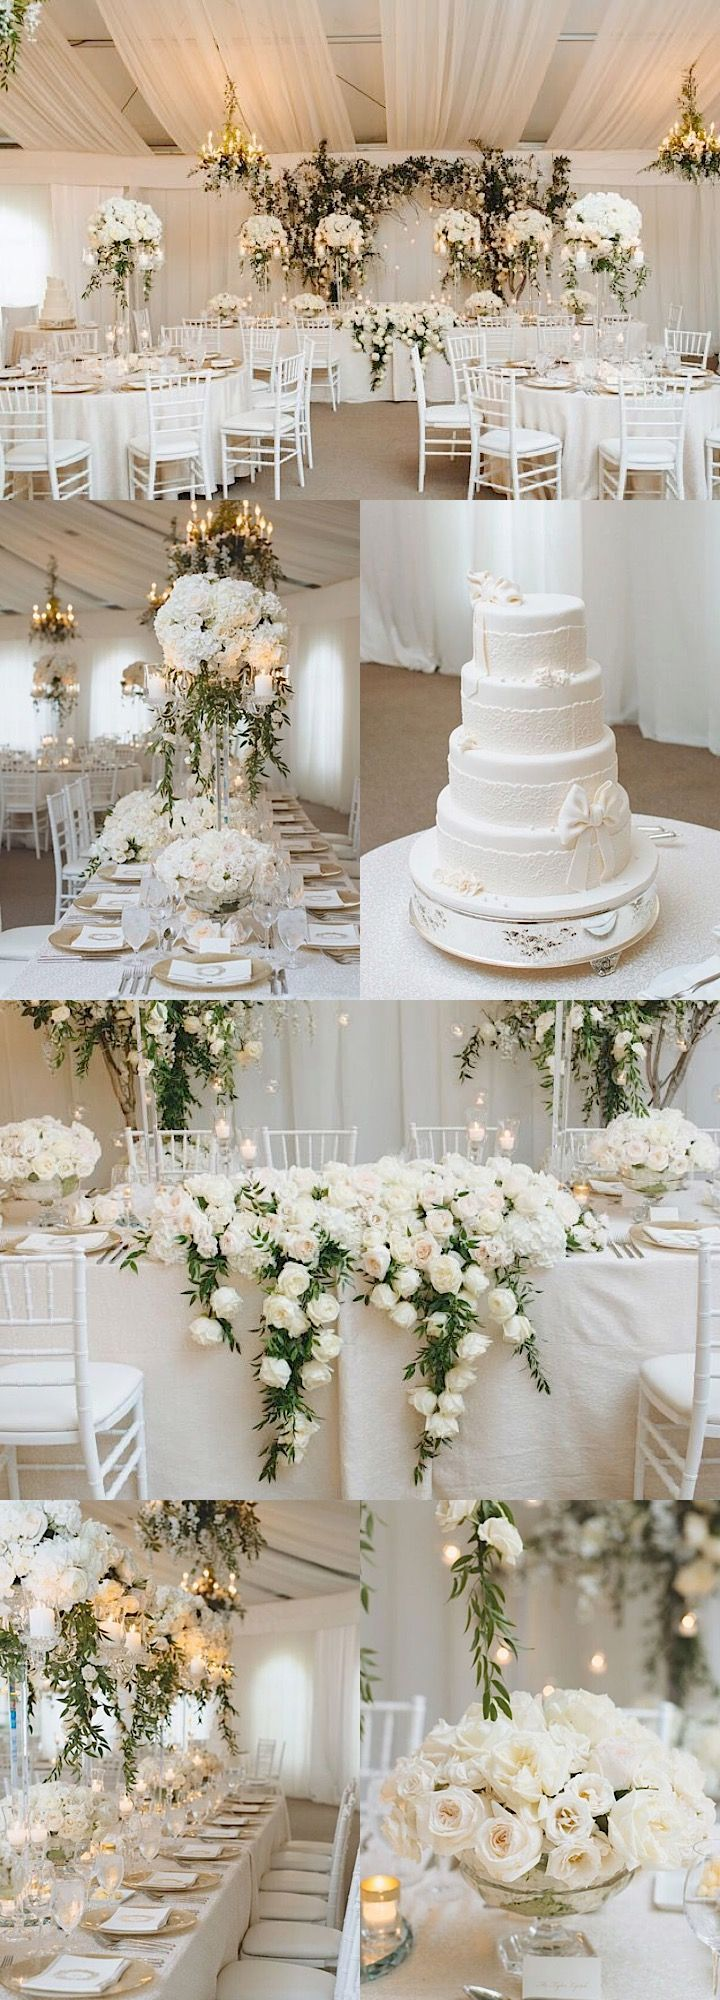 Best 25 elegant wedding ideas on pinterest elegant wedding elegant white wedding reception idea photo mango studios junglespirit Choice Image